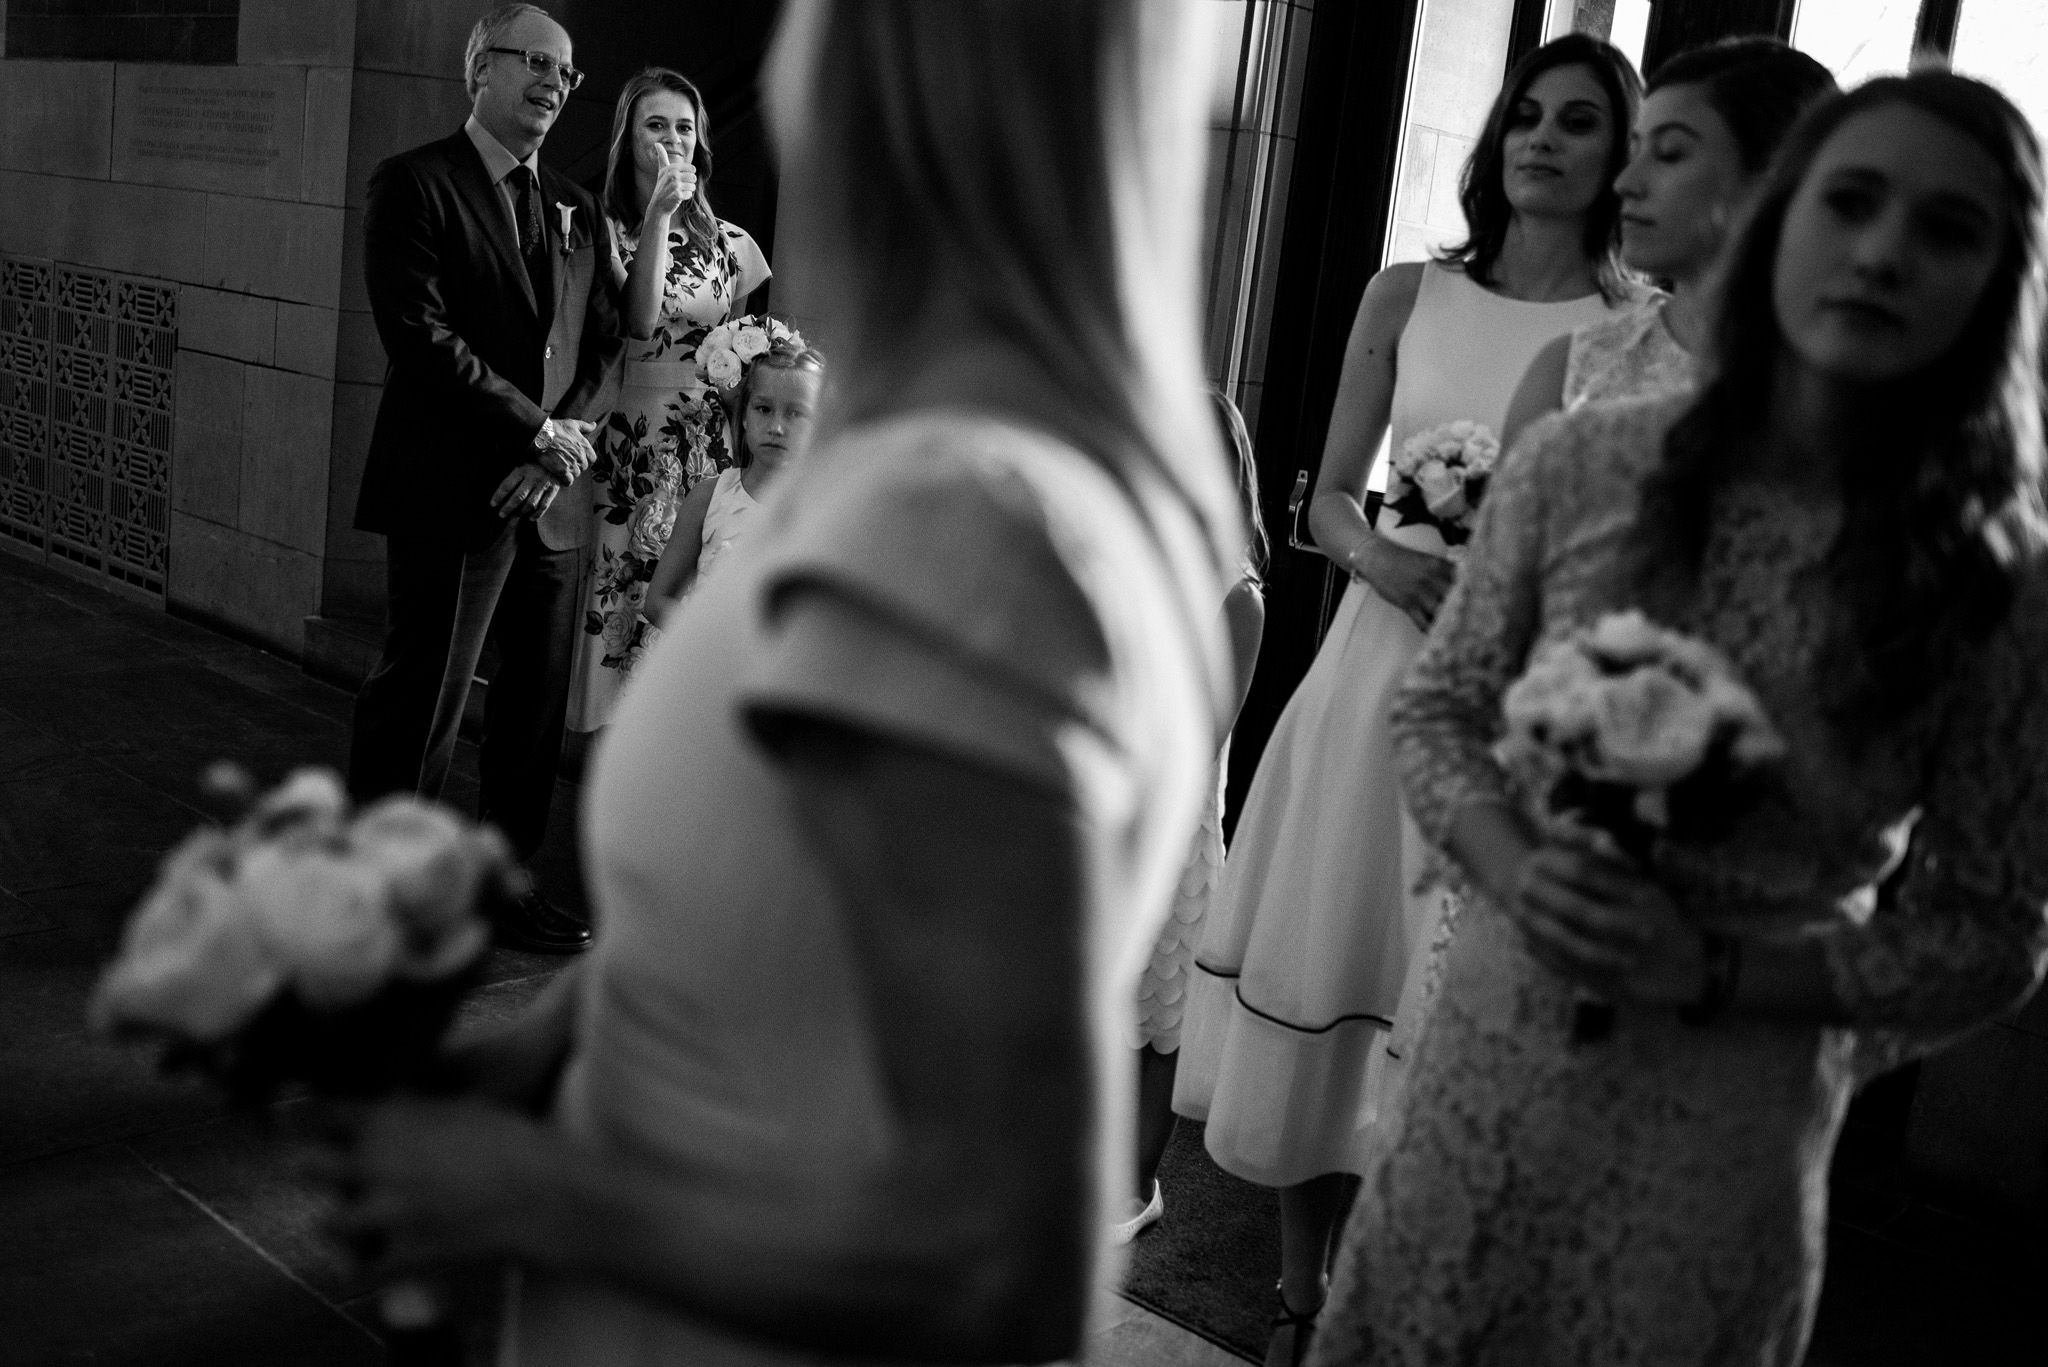 Bride gets ready to walk down the aisle at James Burden Mansion in New York